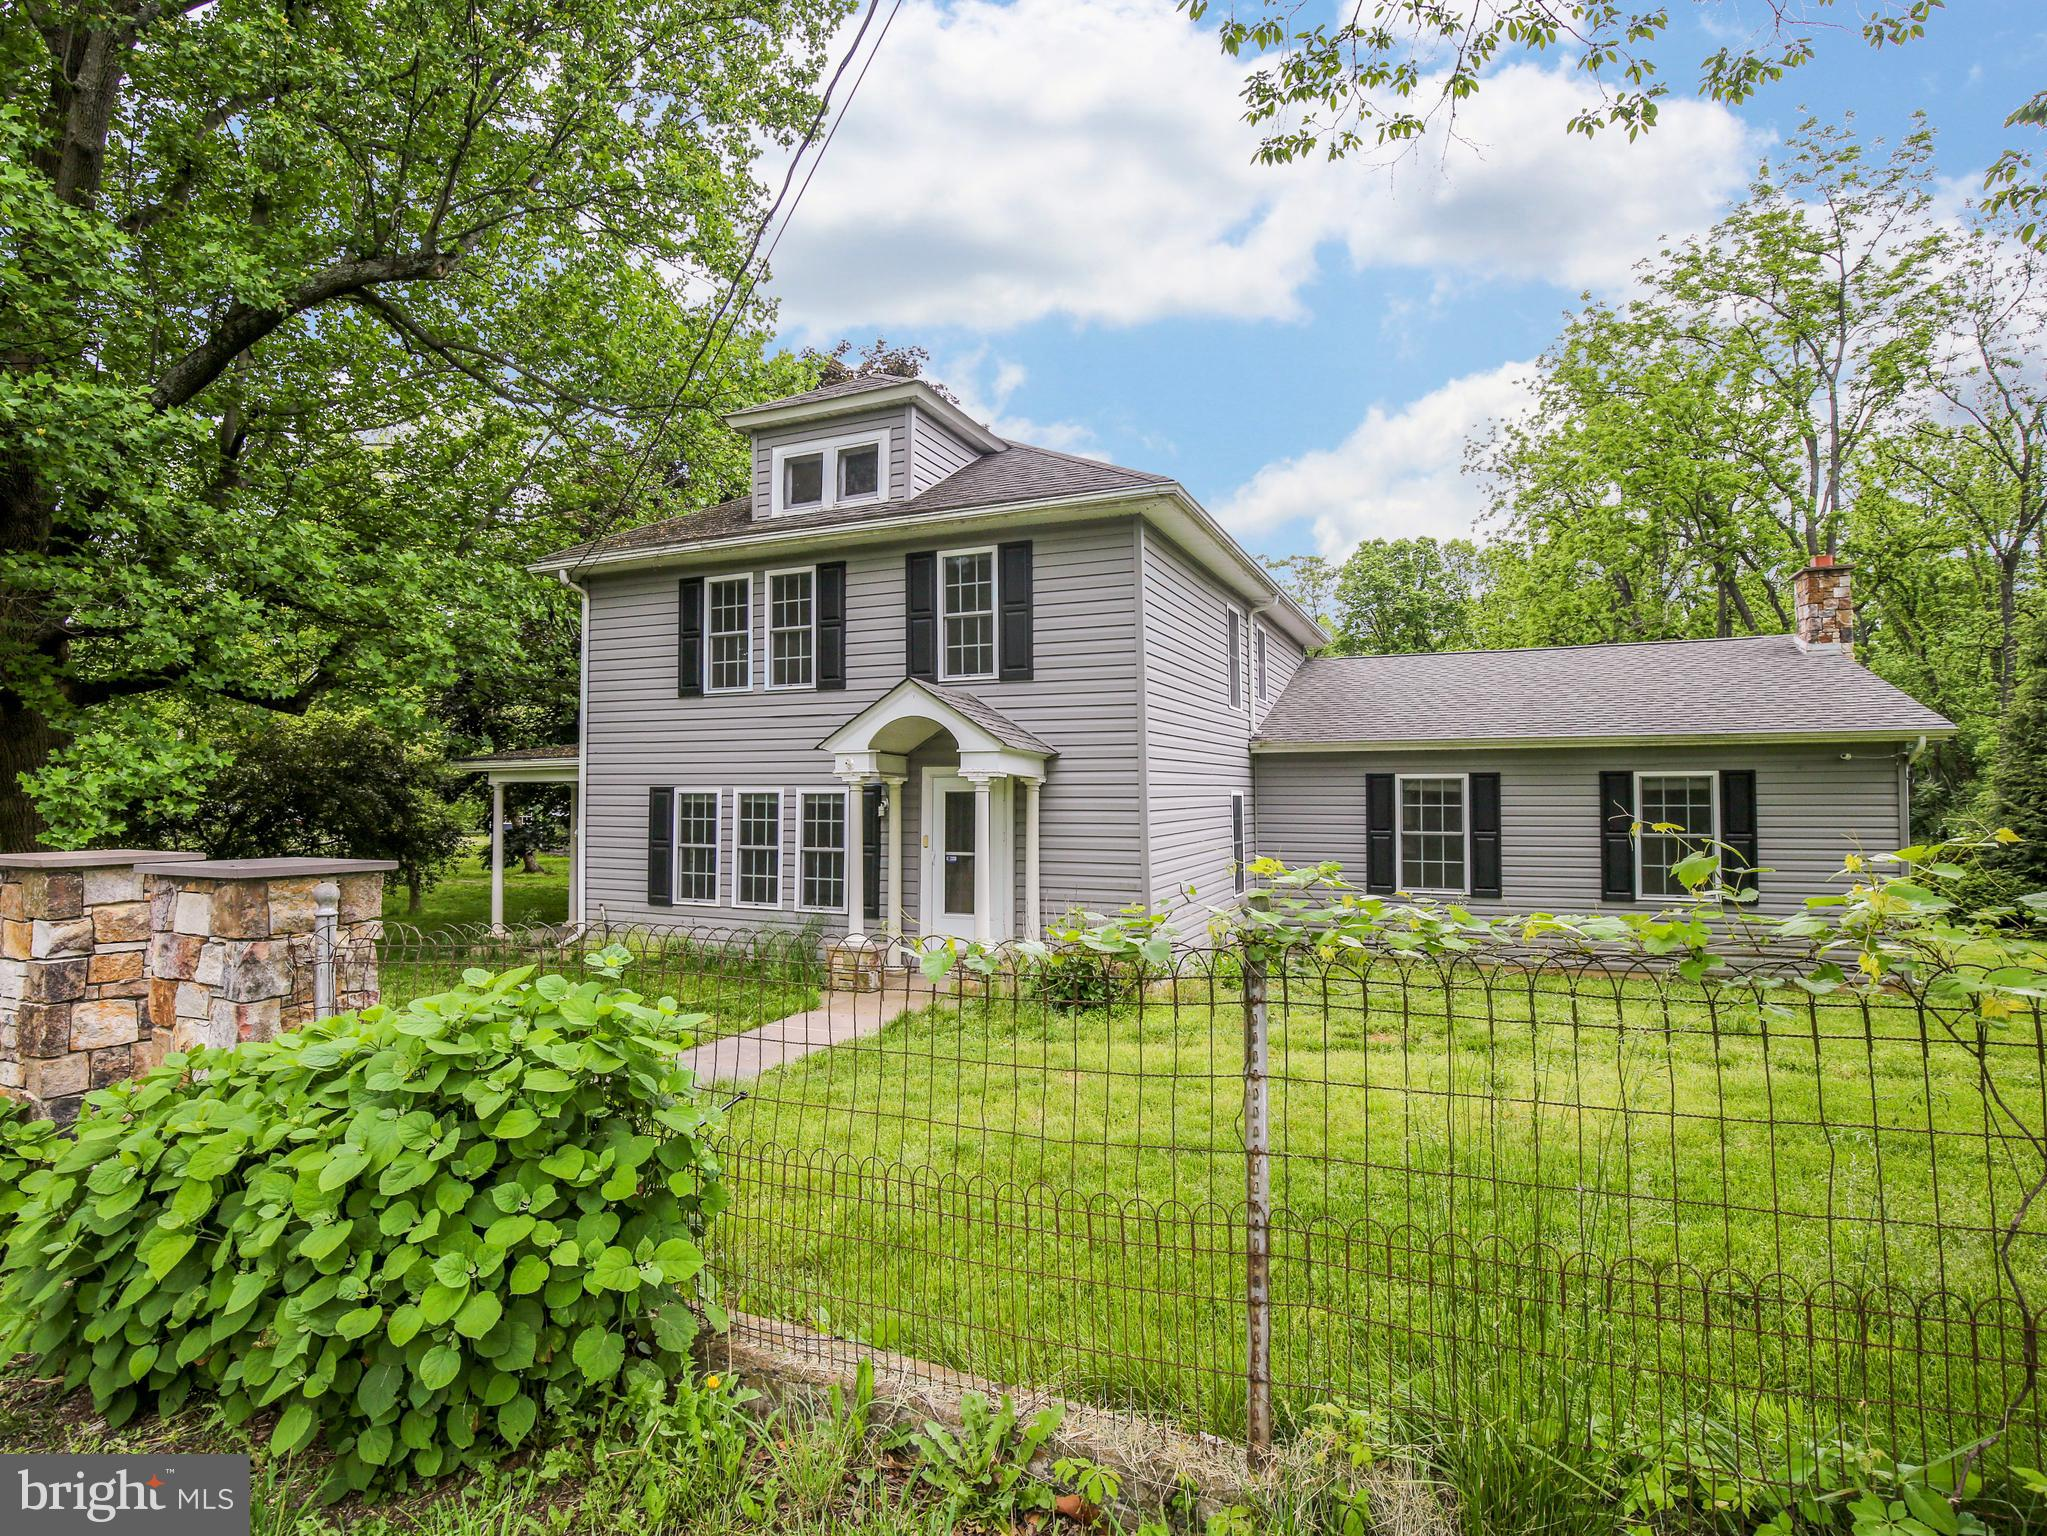 Your own private oasis awaits you with this beautifully restored and renovated classic beauty in a c